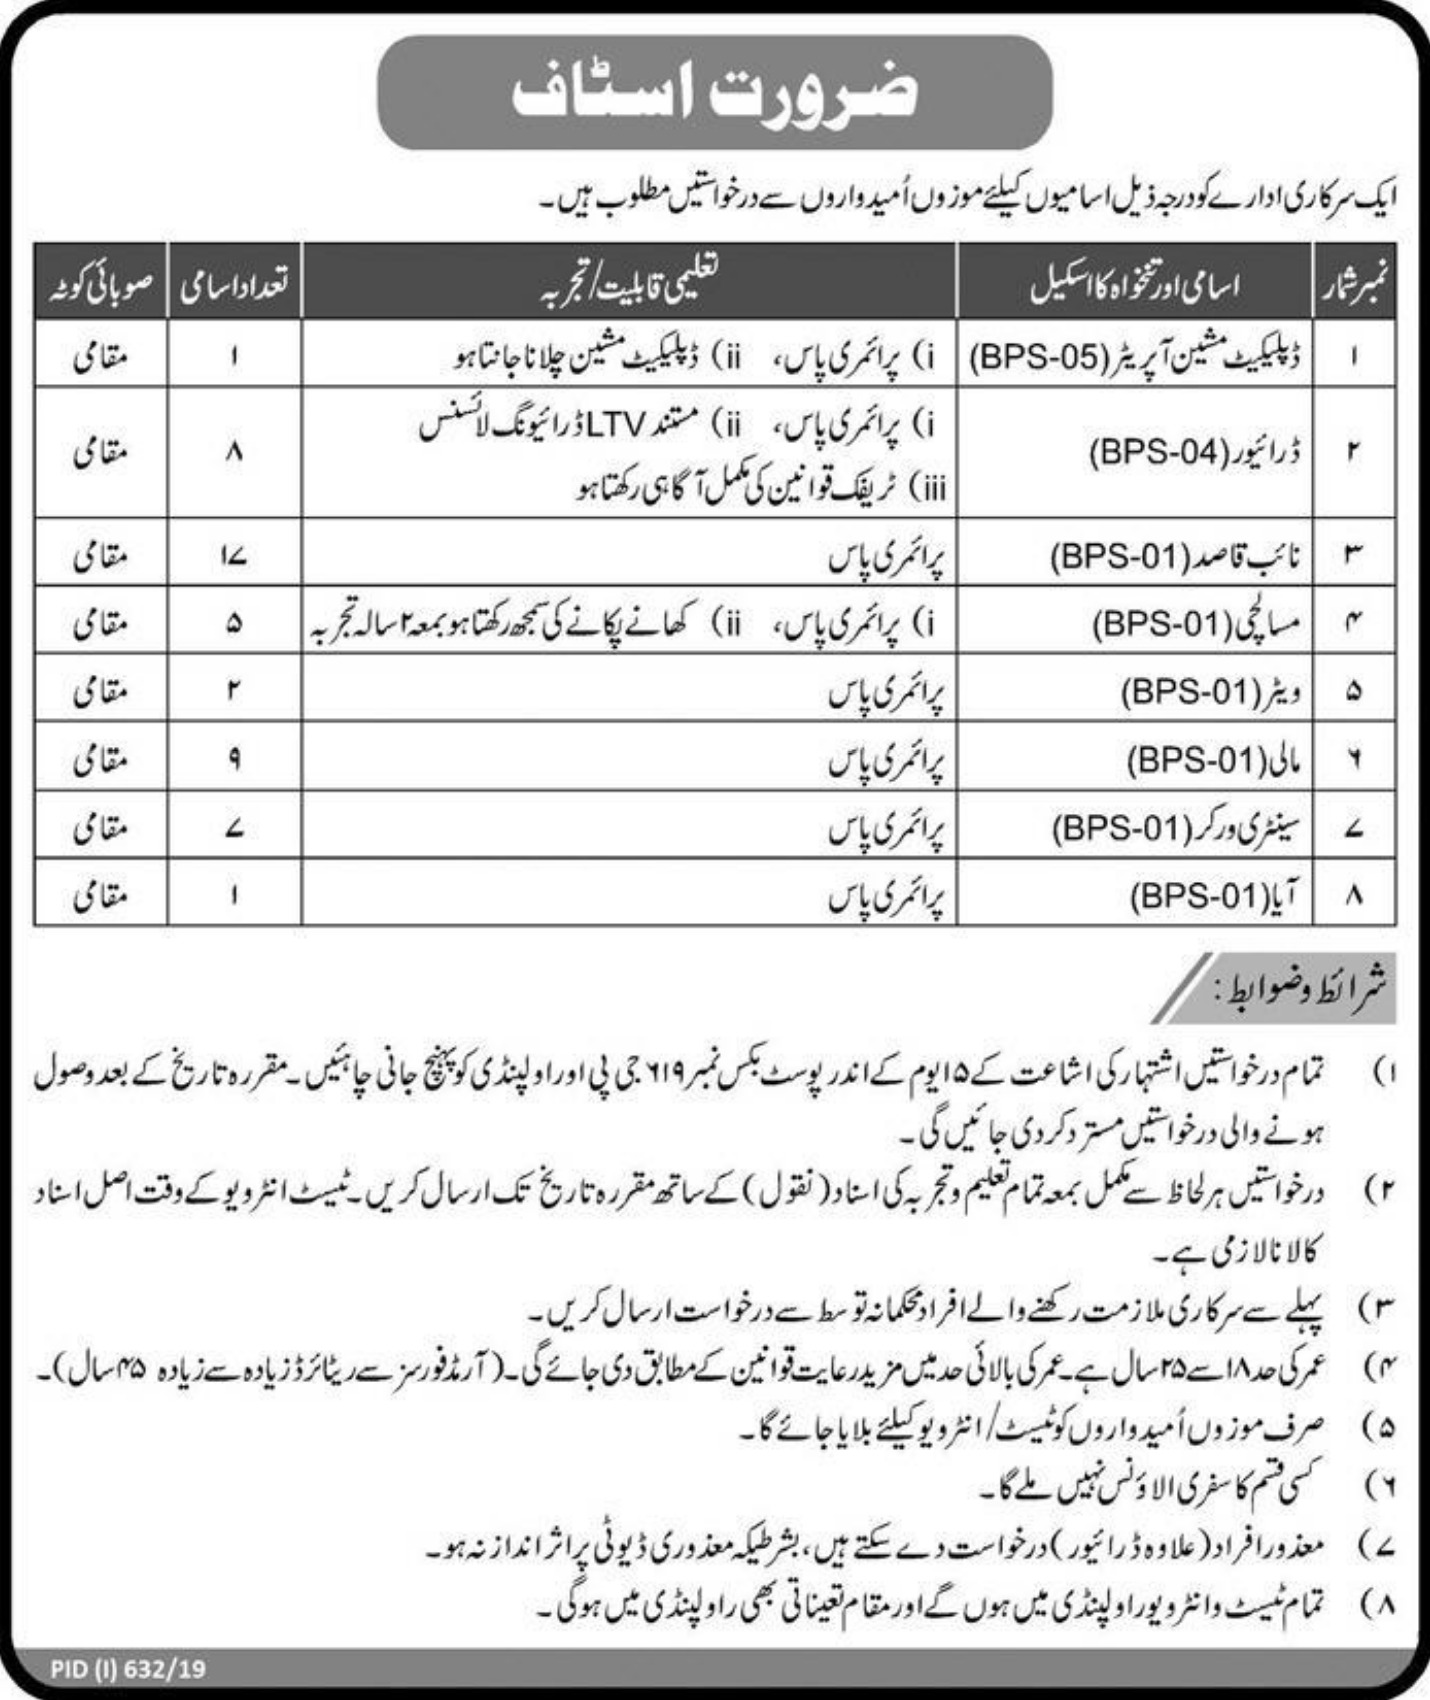 Public Sector Organization Jobs 2019 P.O.Box 619 Rawalpindi